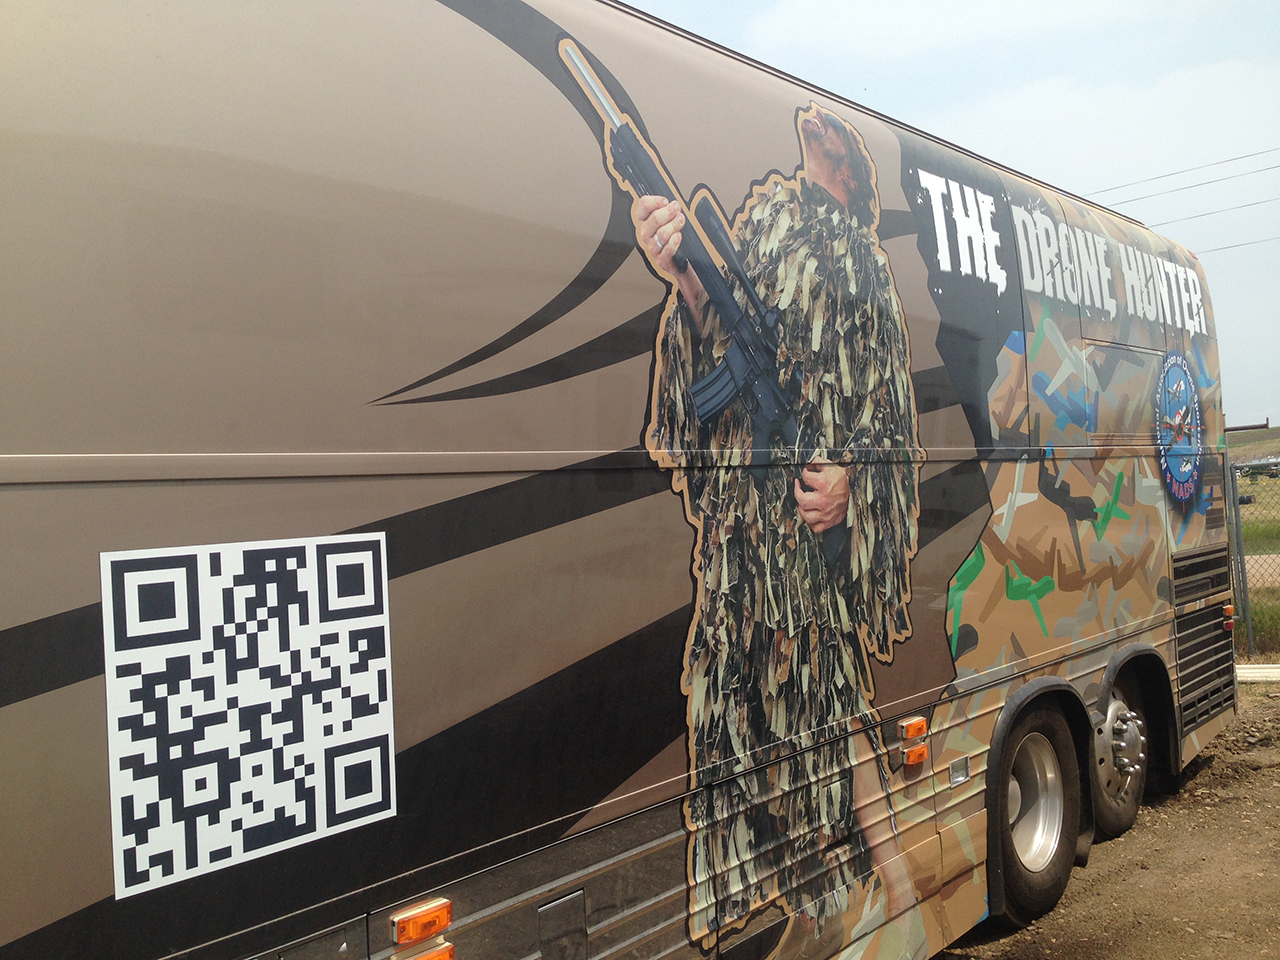 The Drone Hunter bus